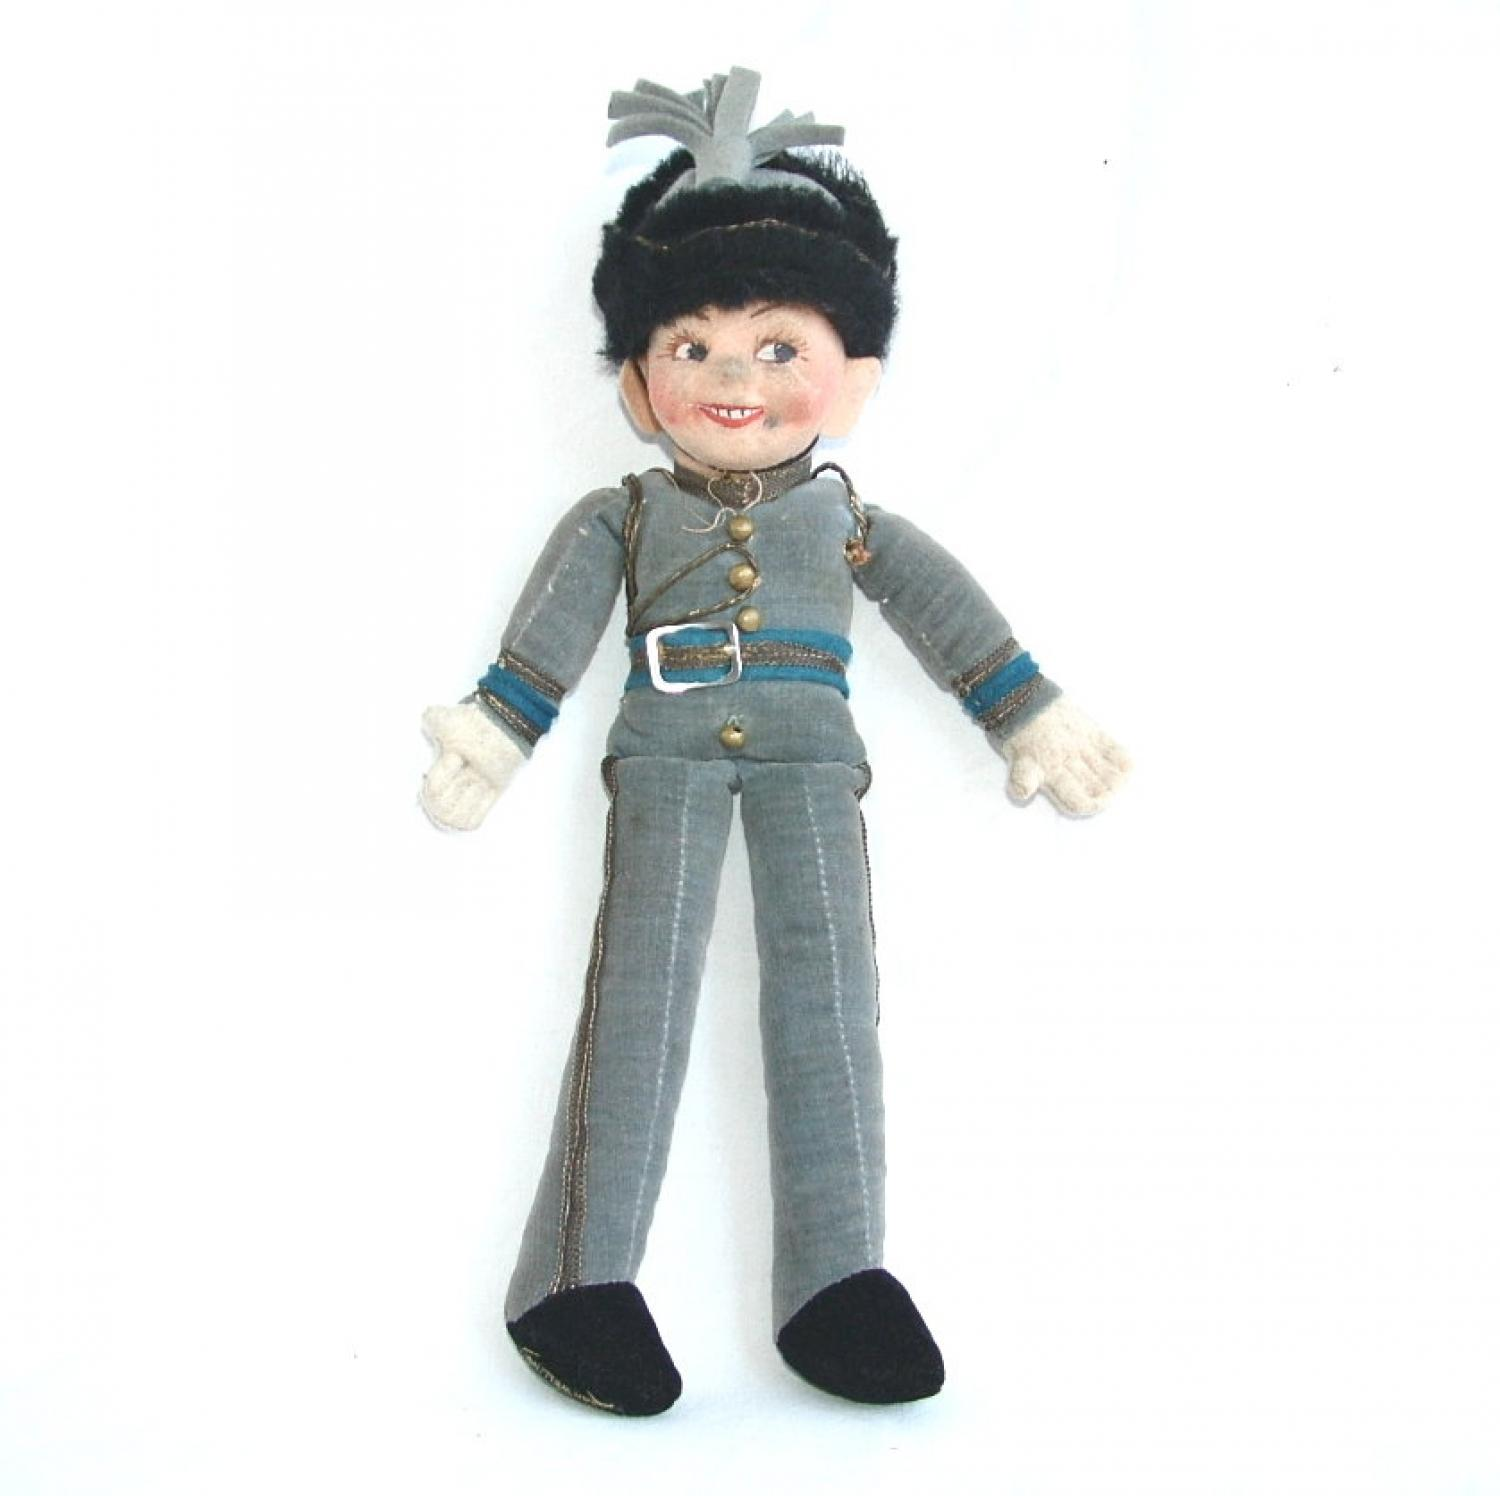 1930s Norah Wellings RAF Doll